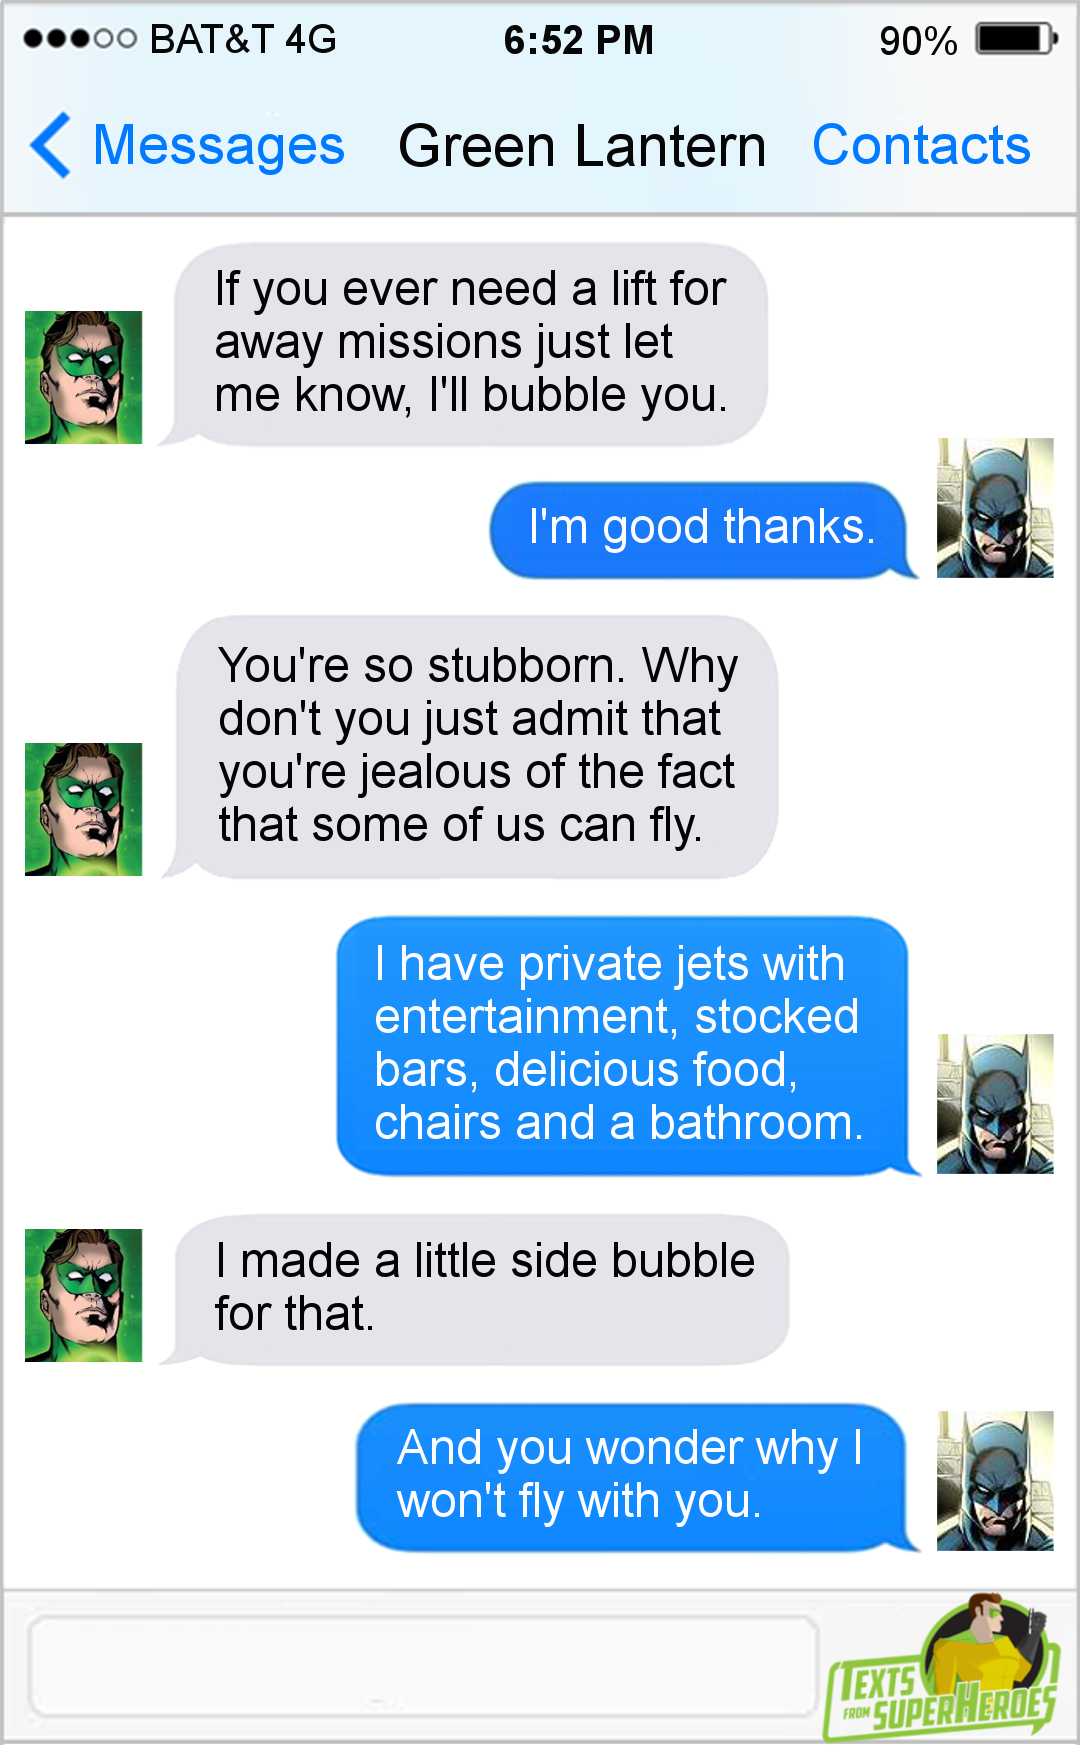 Texts From Superheroes Facebook | Twitter | Patreon | Super Heroes